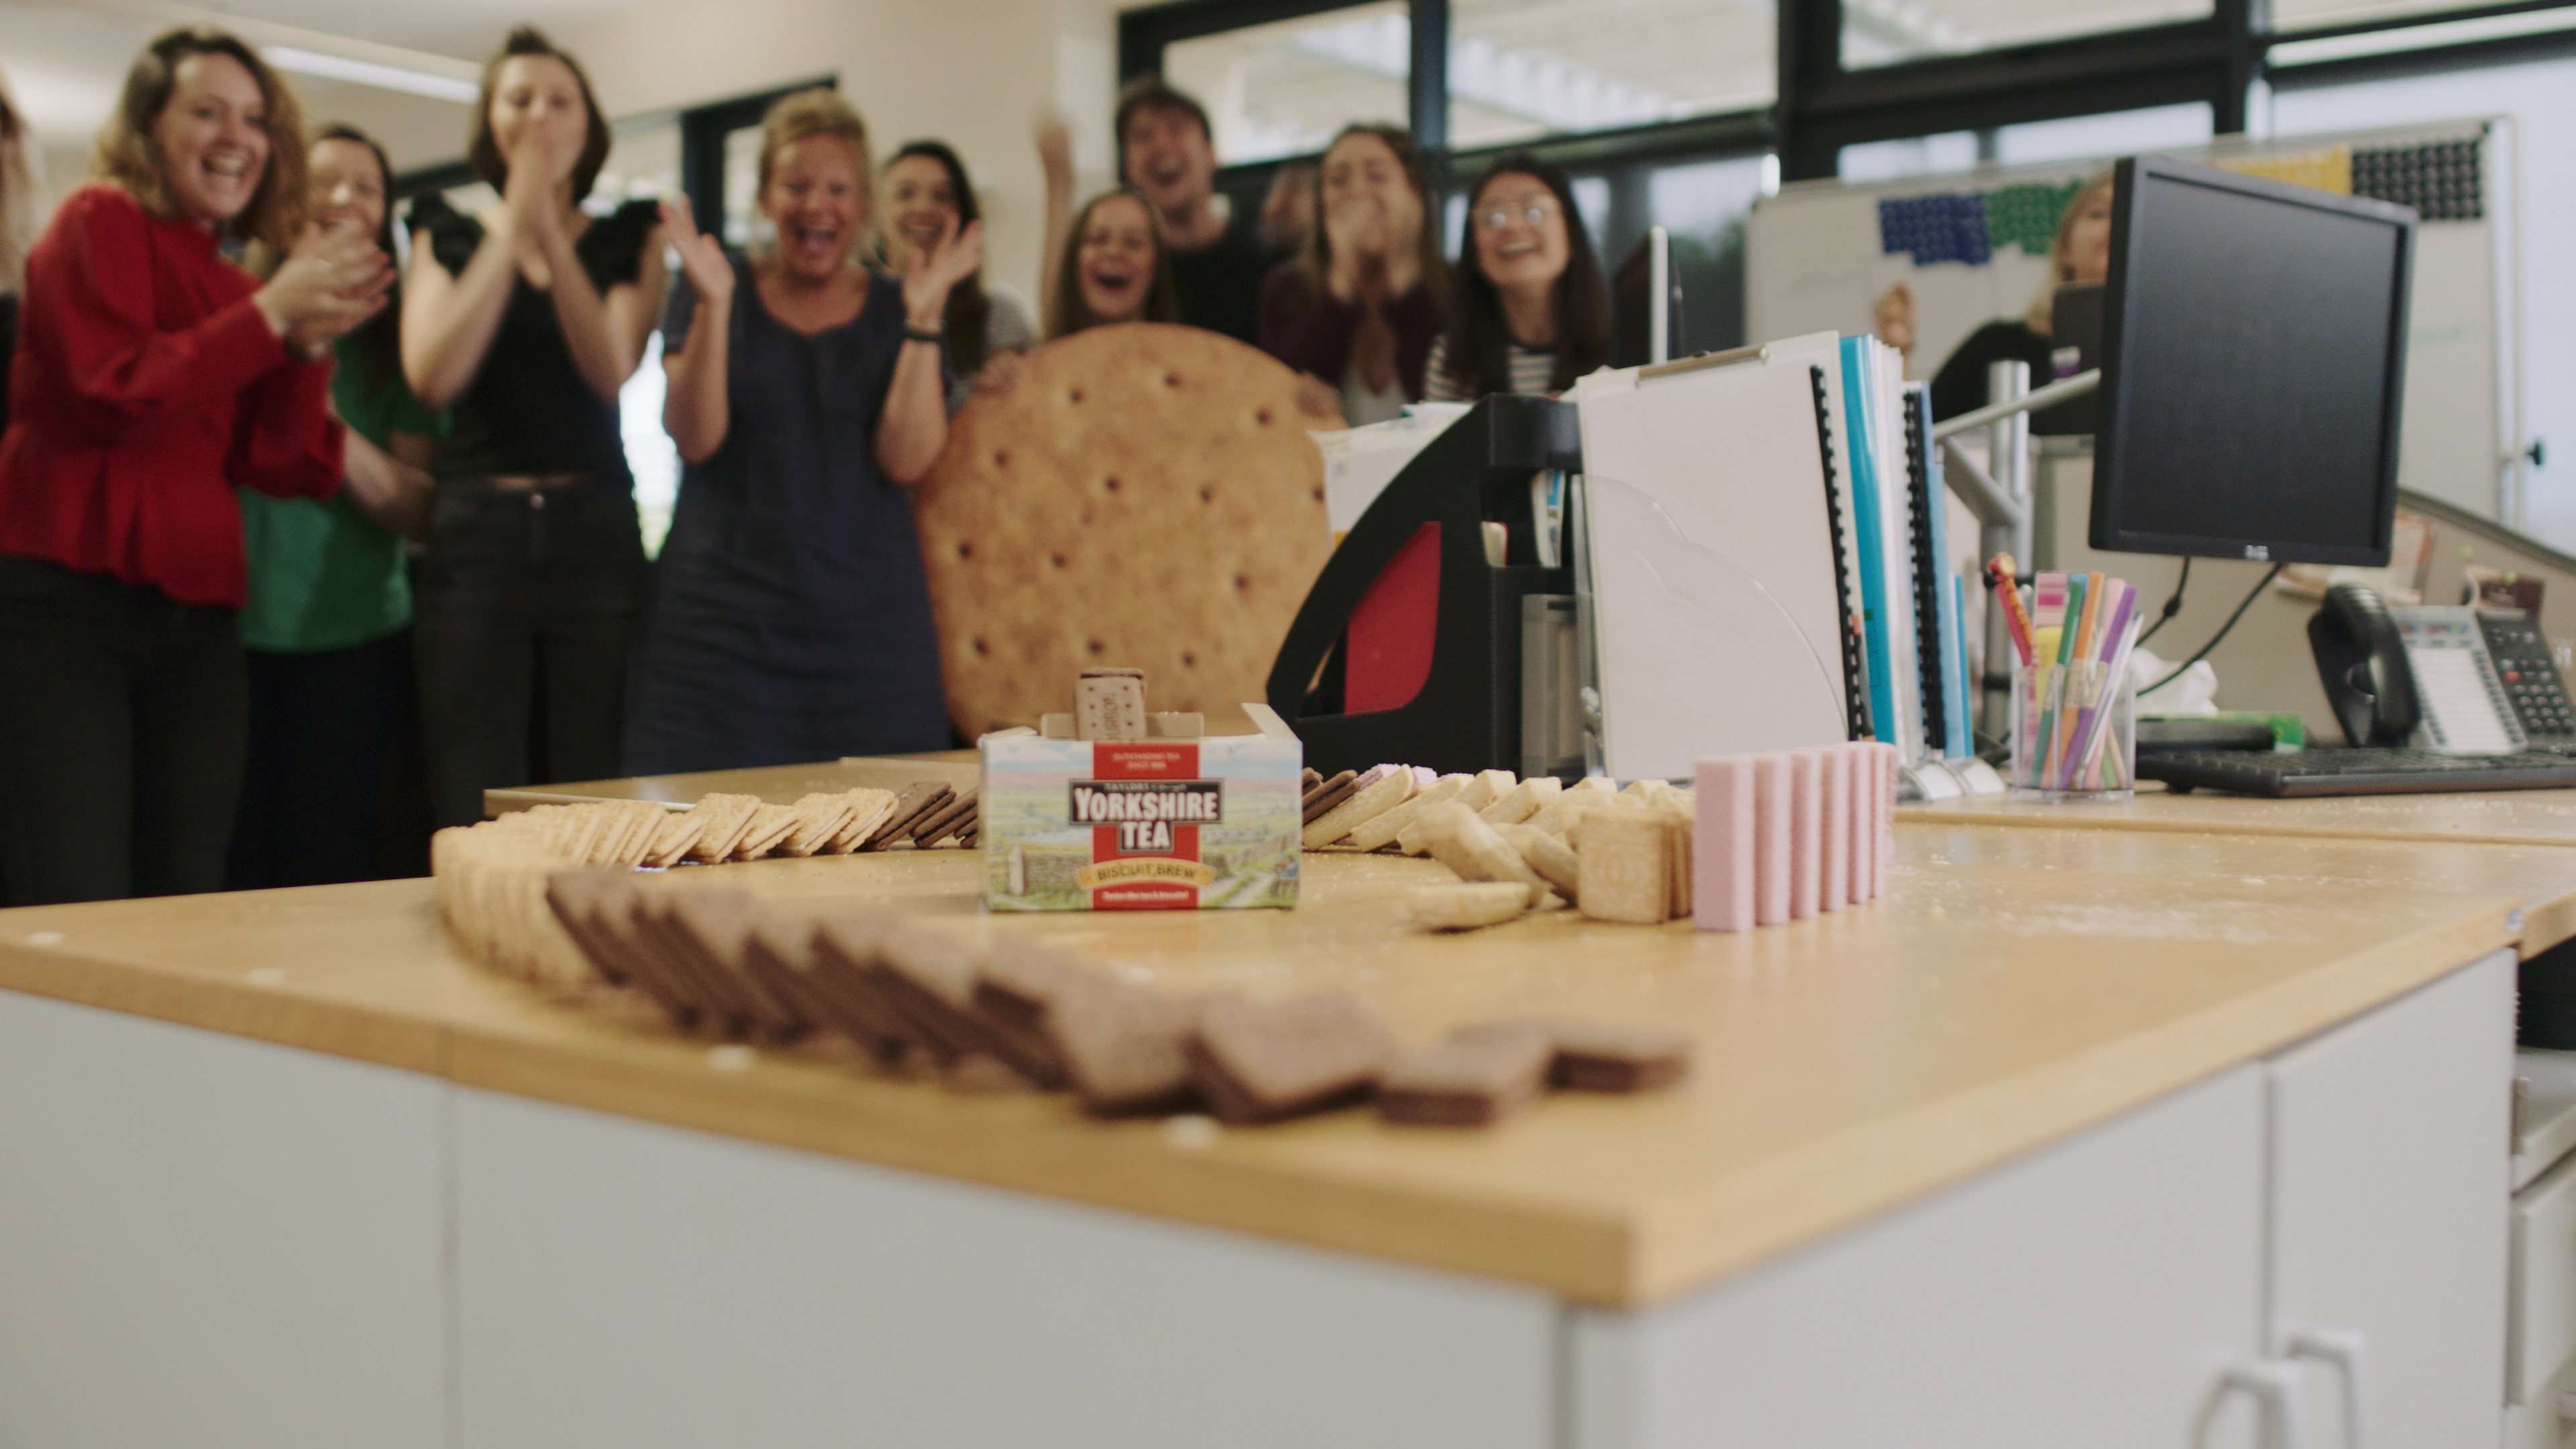 Yorskhire Tea's domino run constructed from biscuits